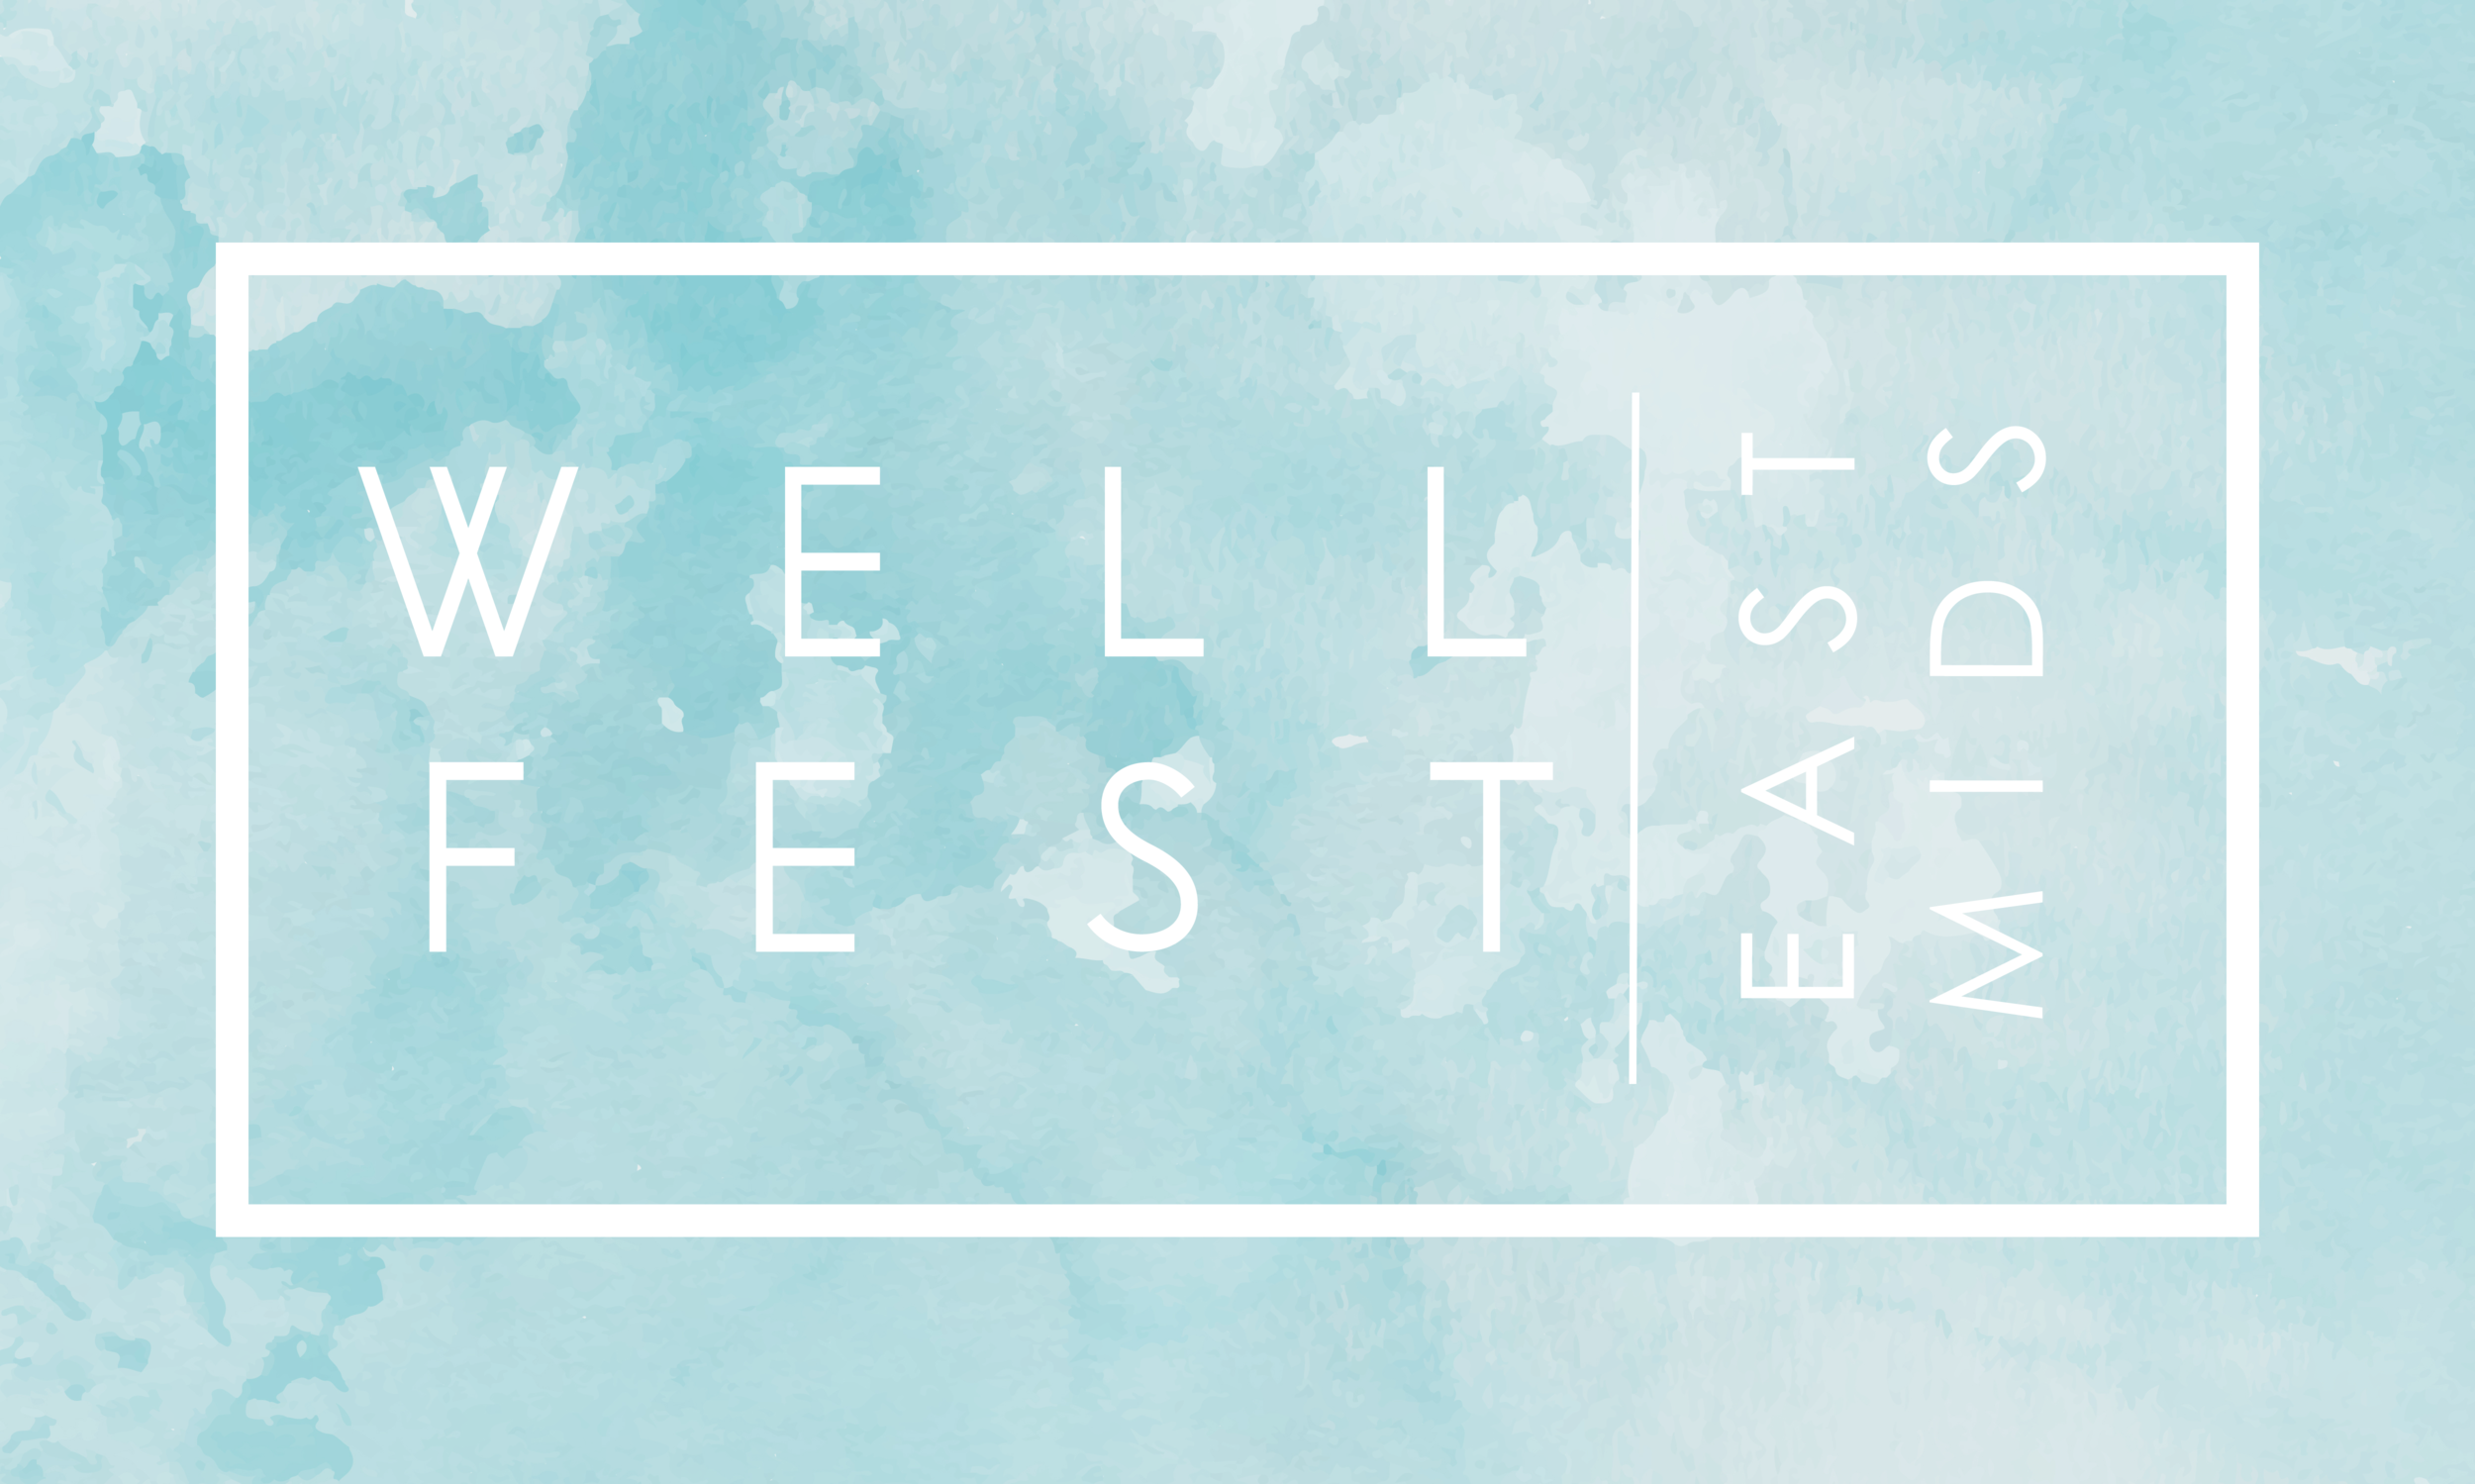 Wellfest logo in action.png